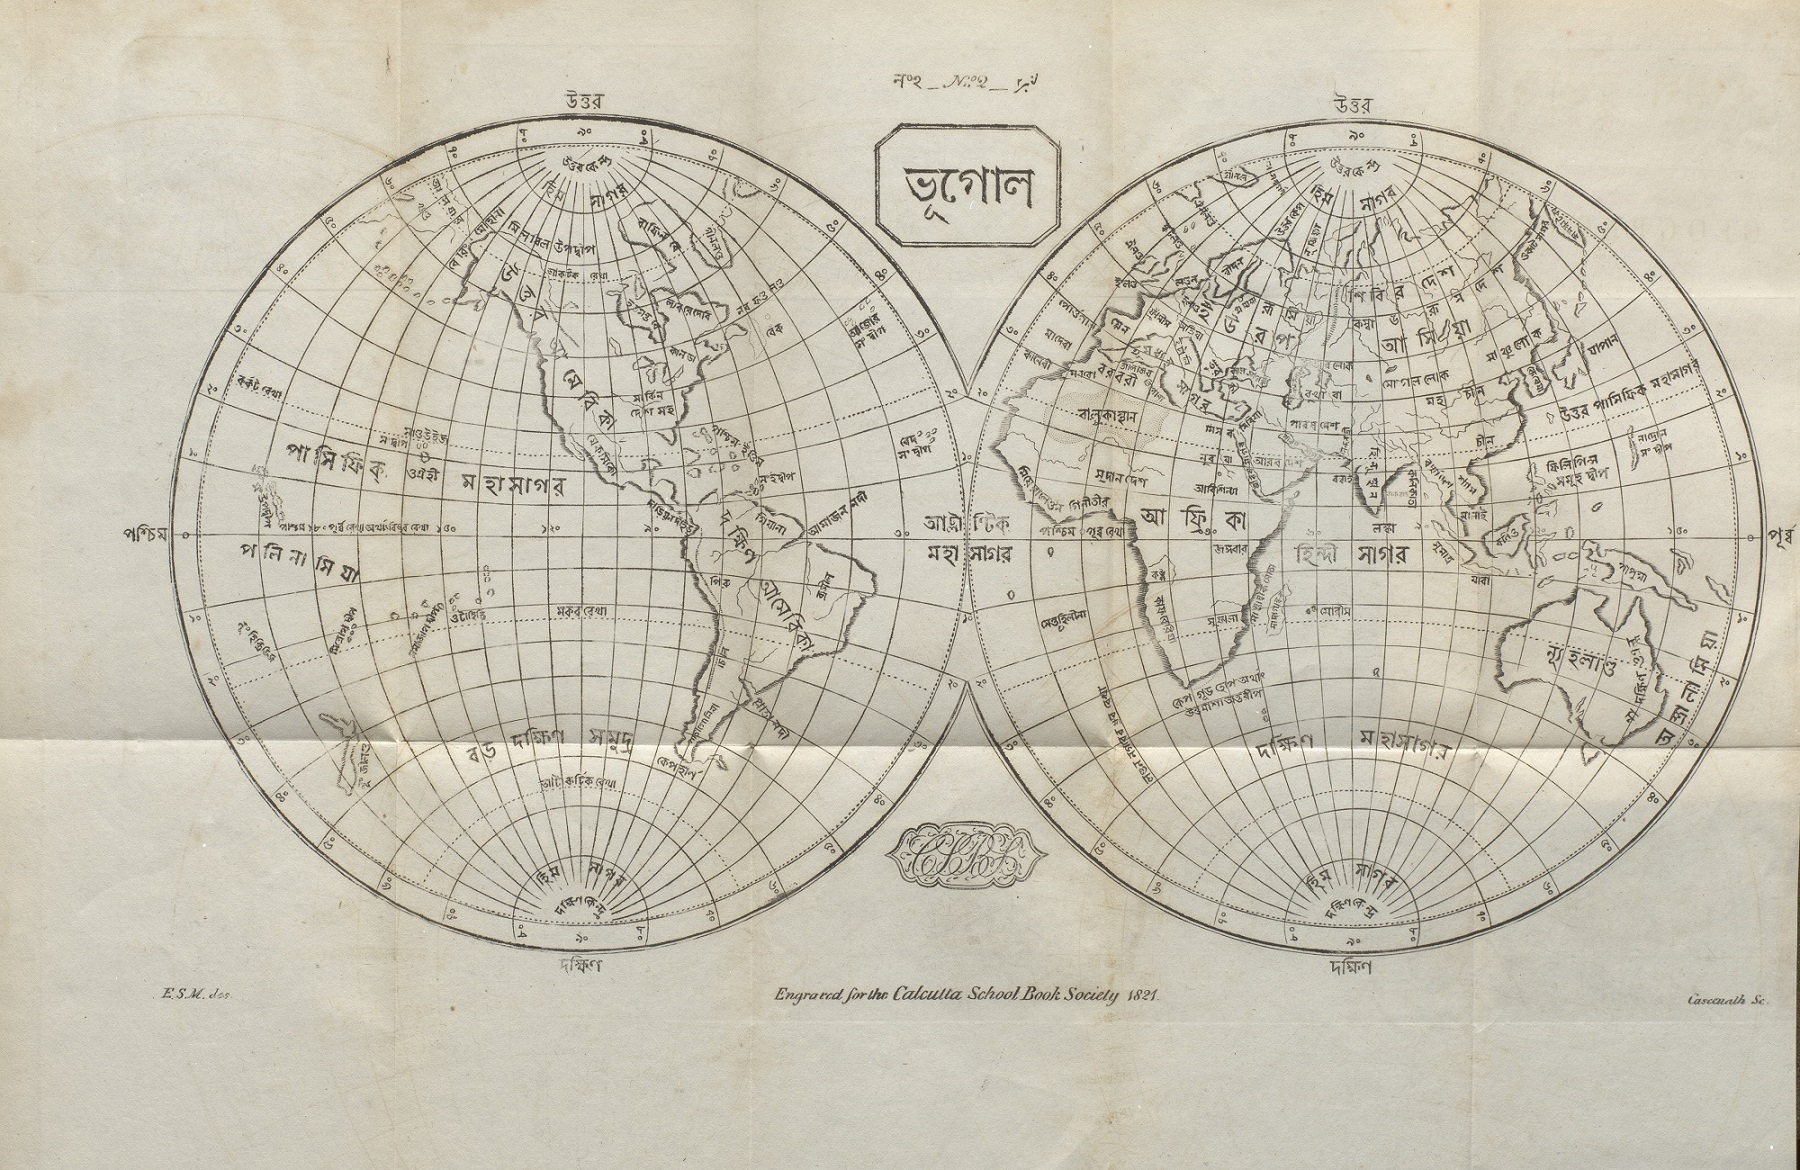 Geography, by W.H.Pearce, Two Centuries of Indian Print Digitisation project, British Library